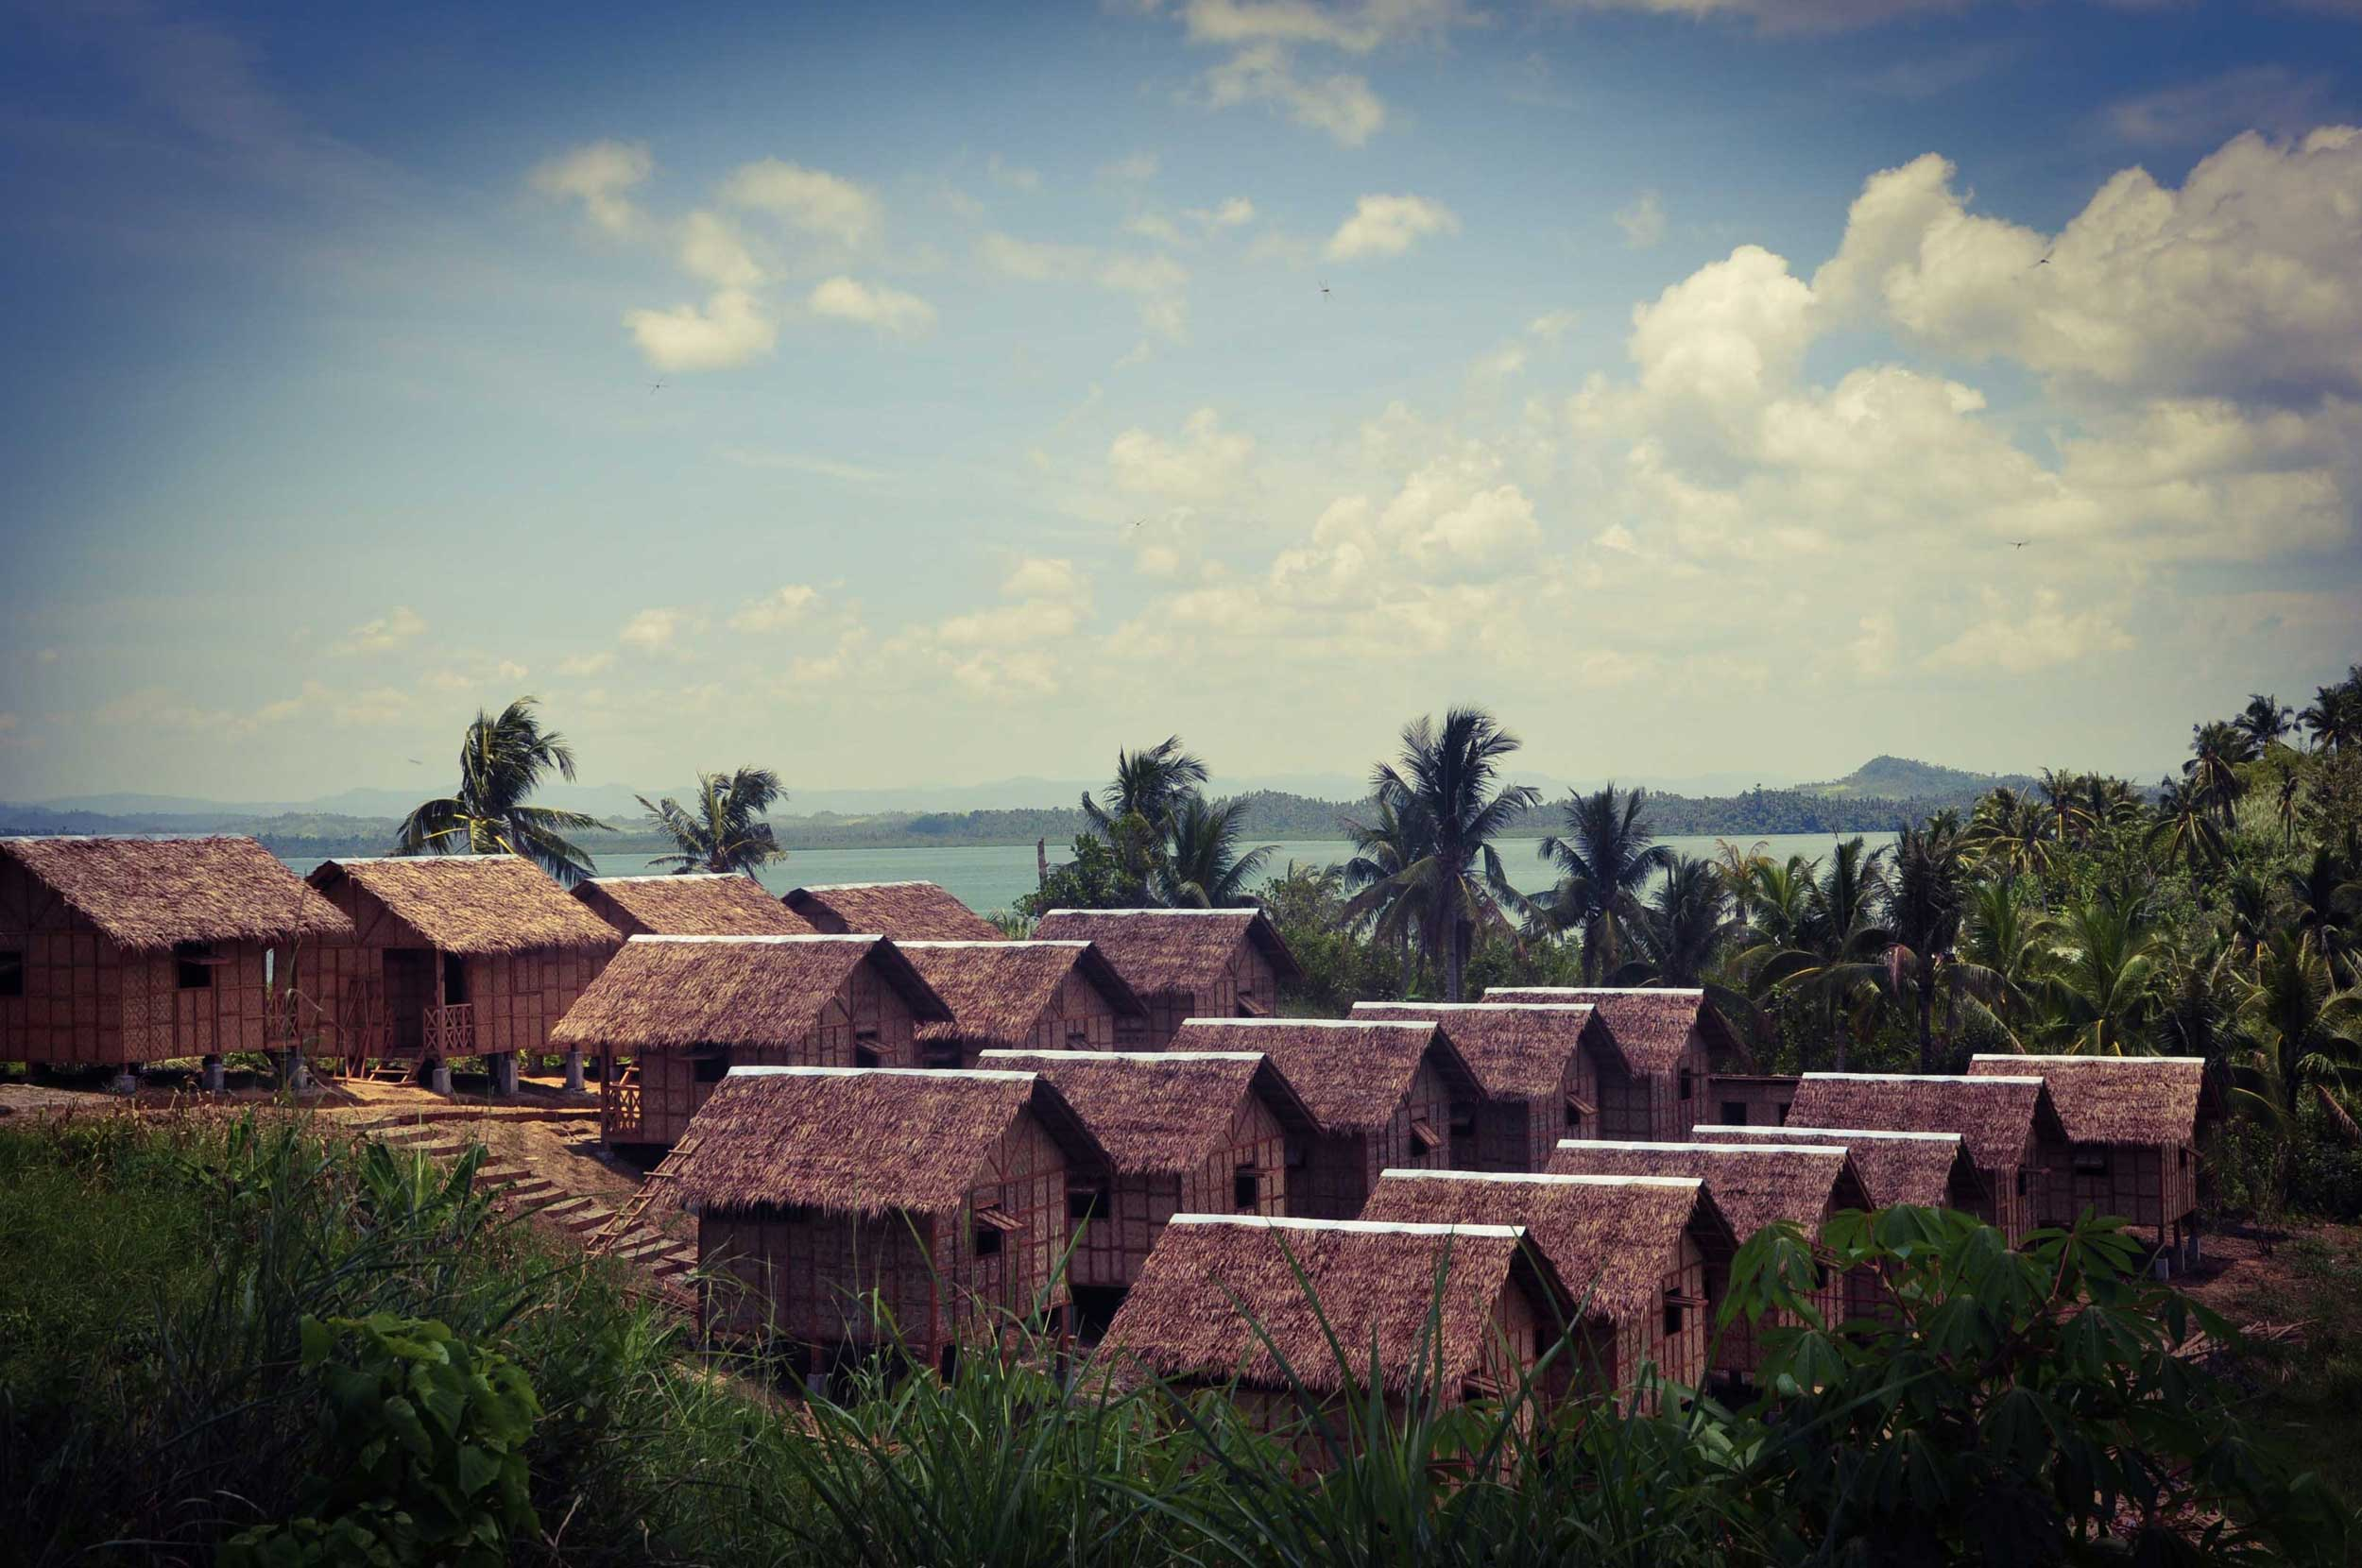 The new transitional village at Tagpuro.